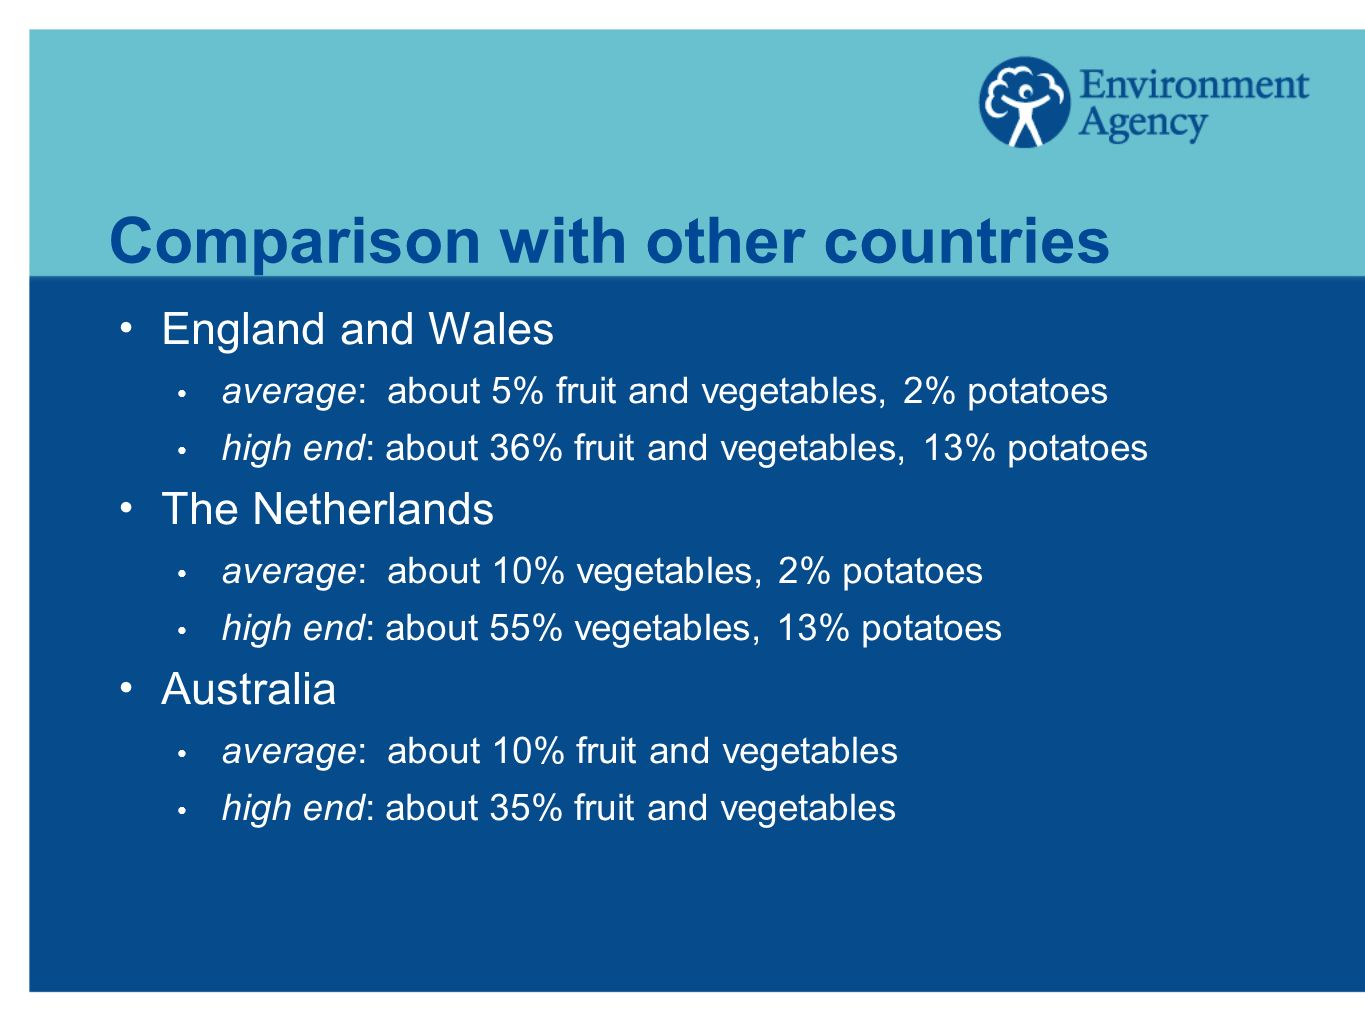 Comparison with other countries England and Wales average: about 5% fruit and vegetables, 2% potatoes high end: about 36% fruit and vegetables, 13% potatoes The Netherlands average: about 10% vegetables, 2% potatoes high end: about 55% vegetables, 13% potatoes Australia average: about 10% fruit and vegetables high end: about 35% fruit and vegetables